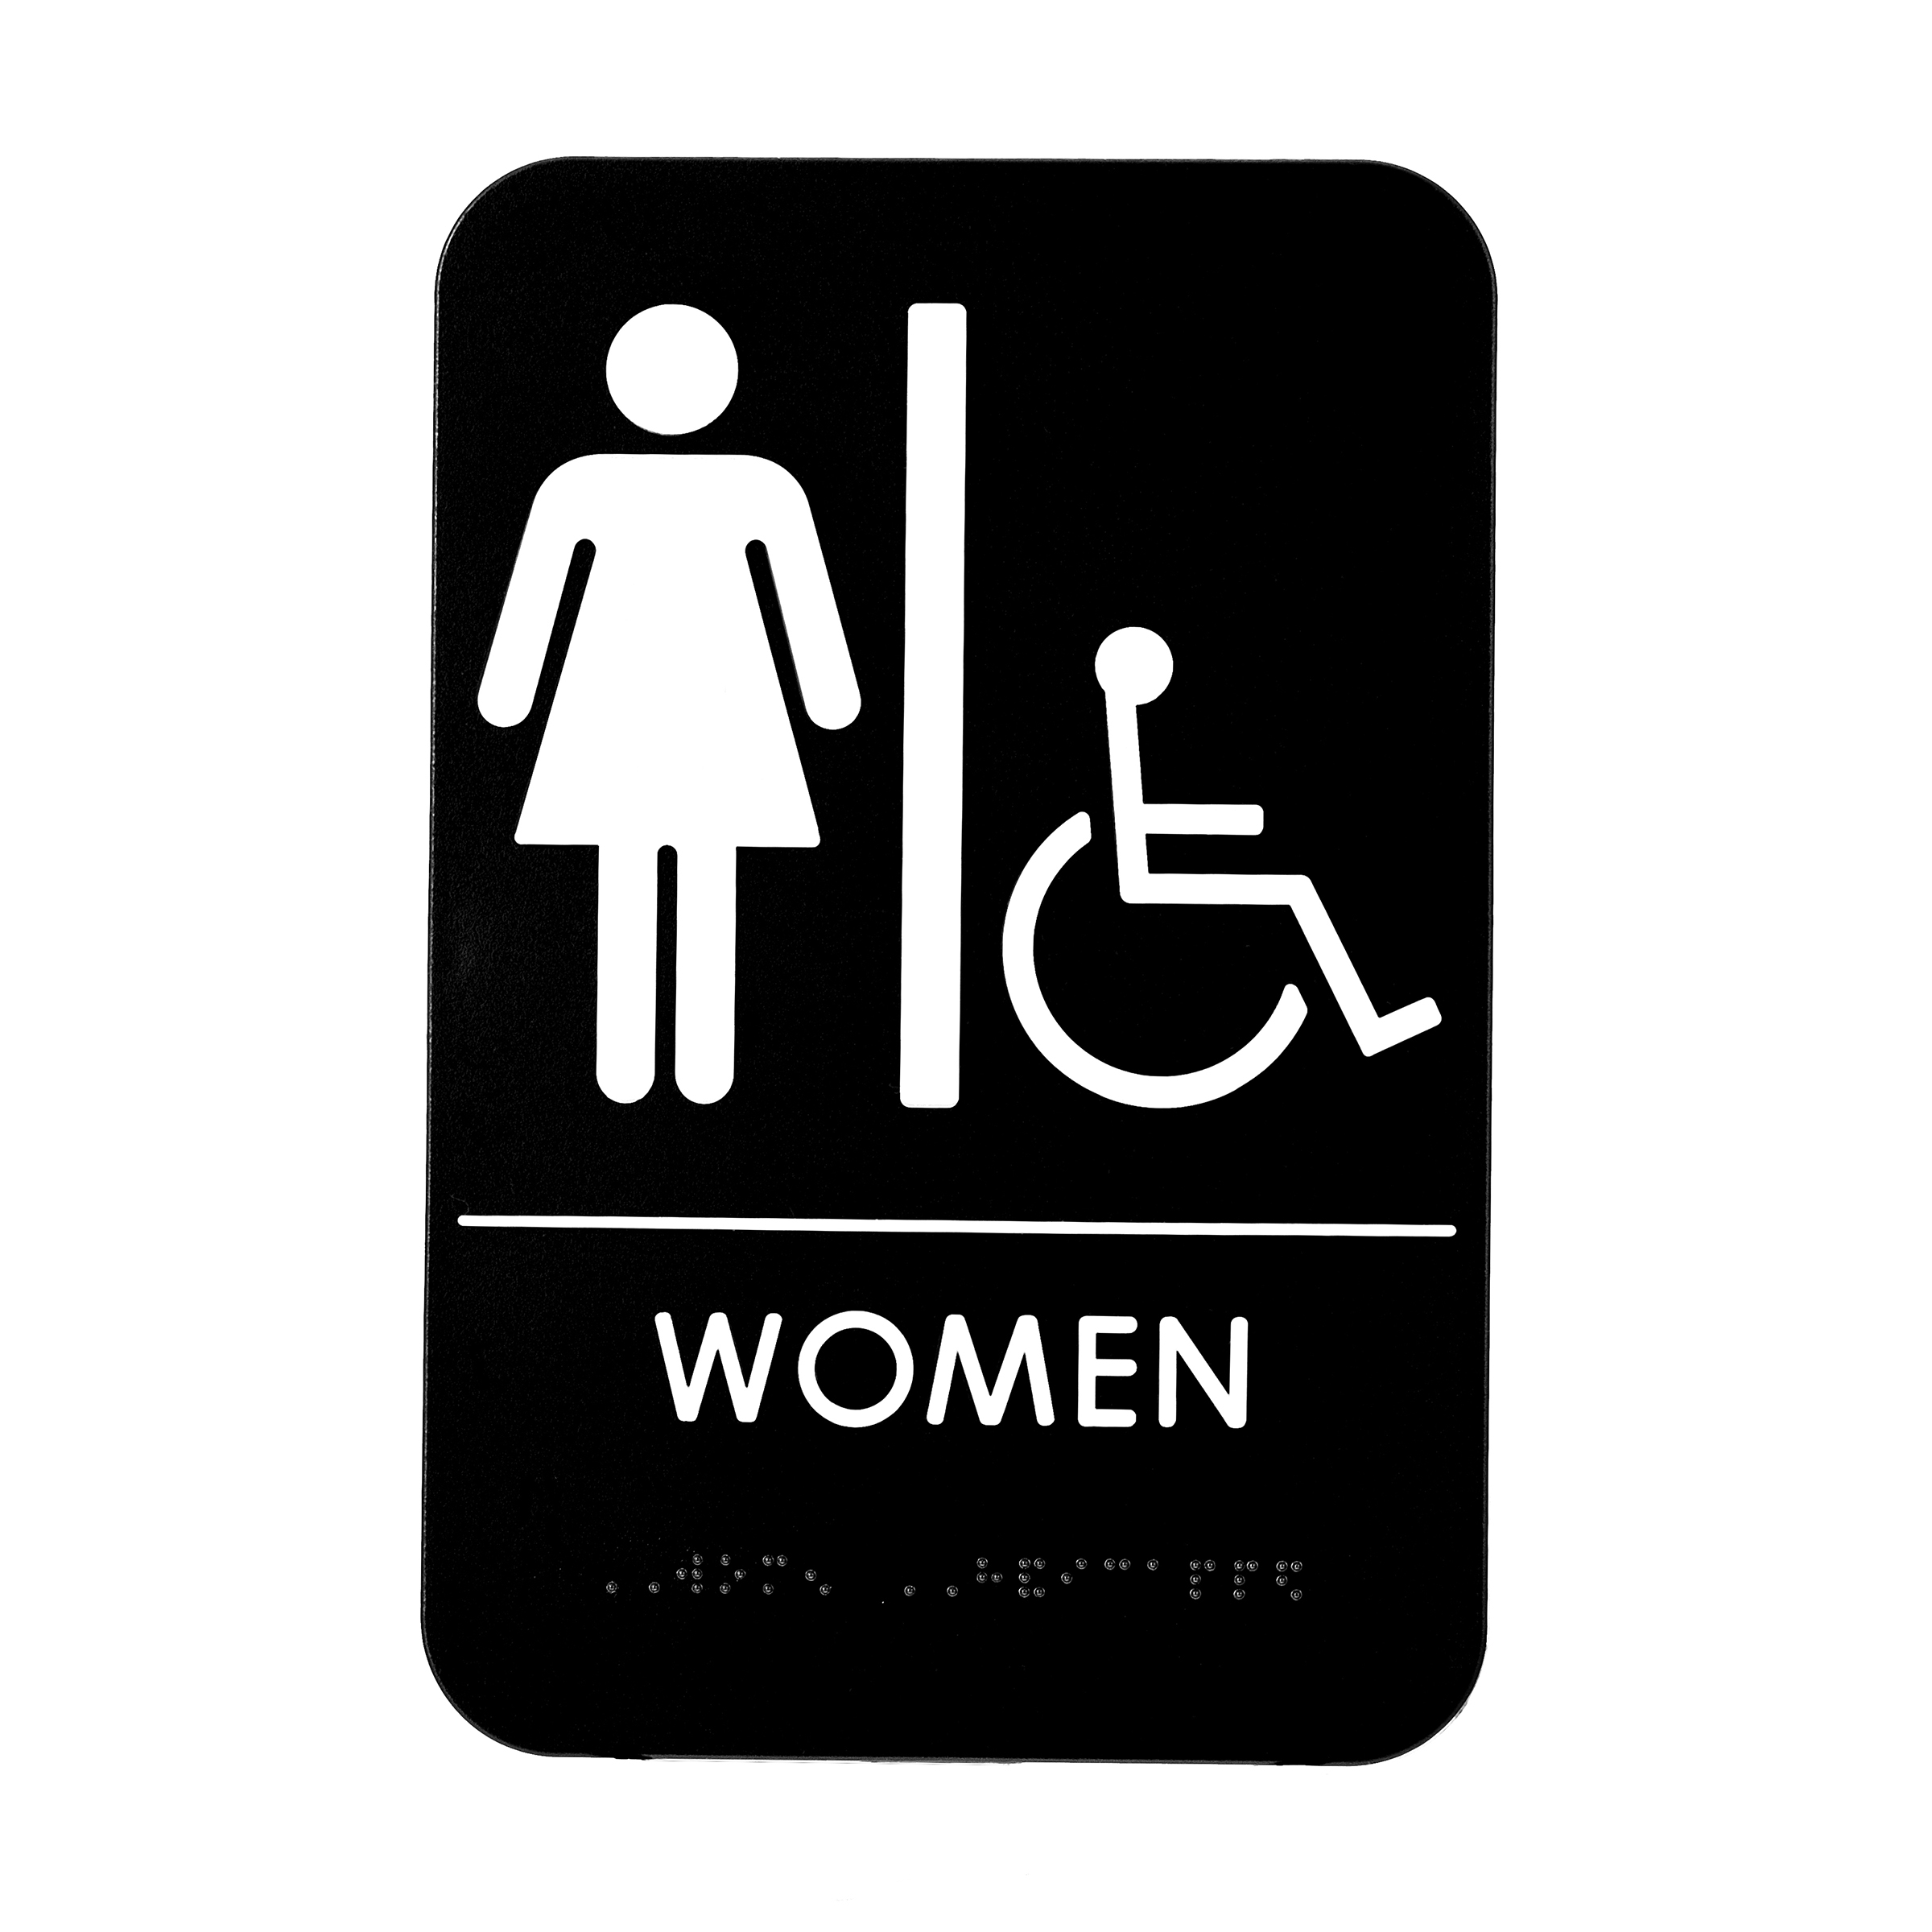 Alpine Industries Womens Braille Handicapped Restroom Sign, Black/White, ADA Compliant, 6x9